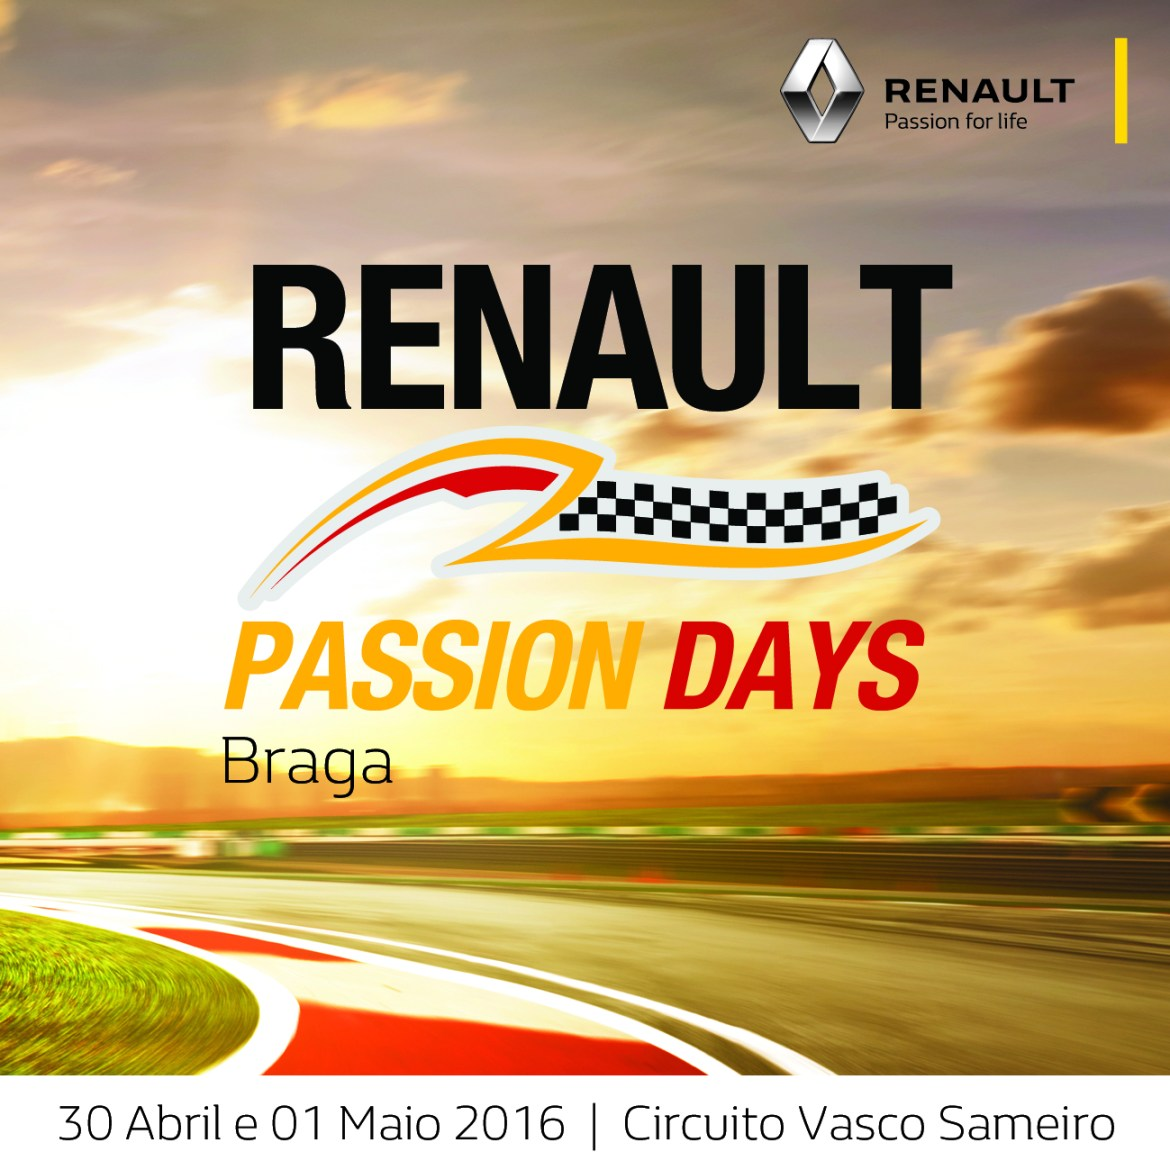 Renault Passion Days Braga